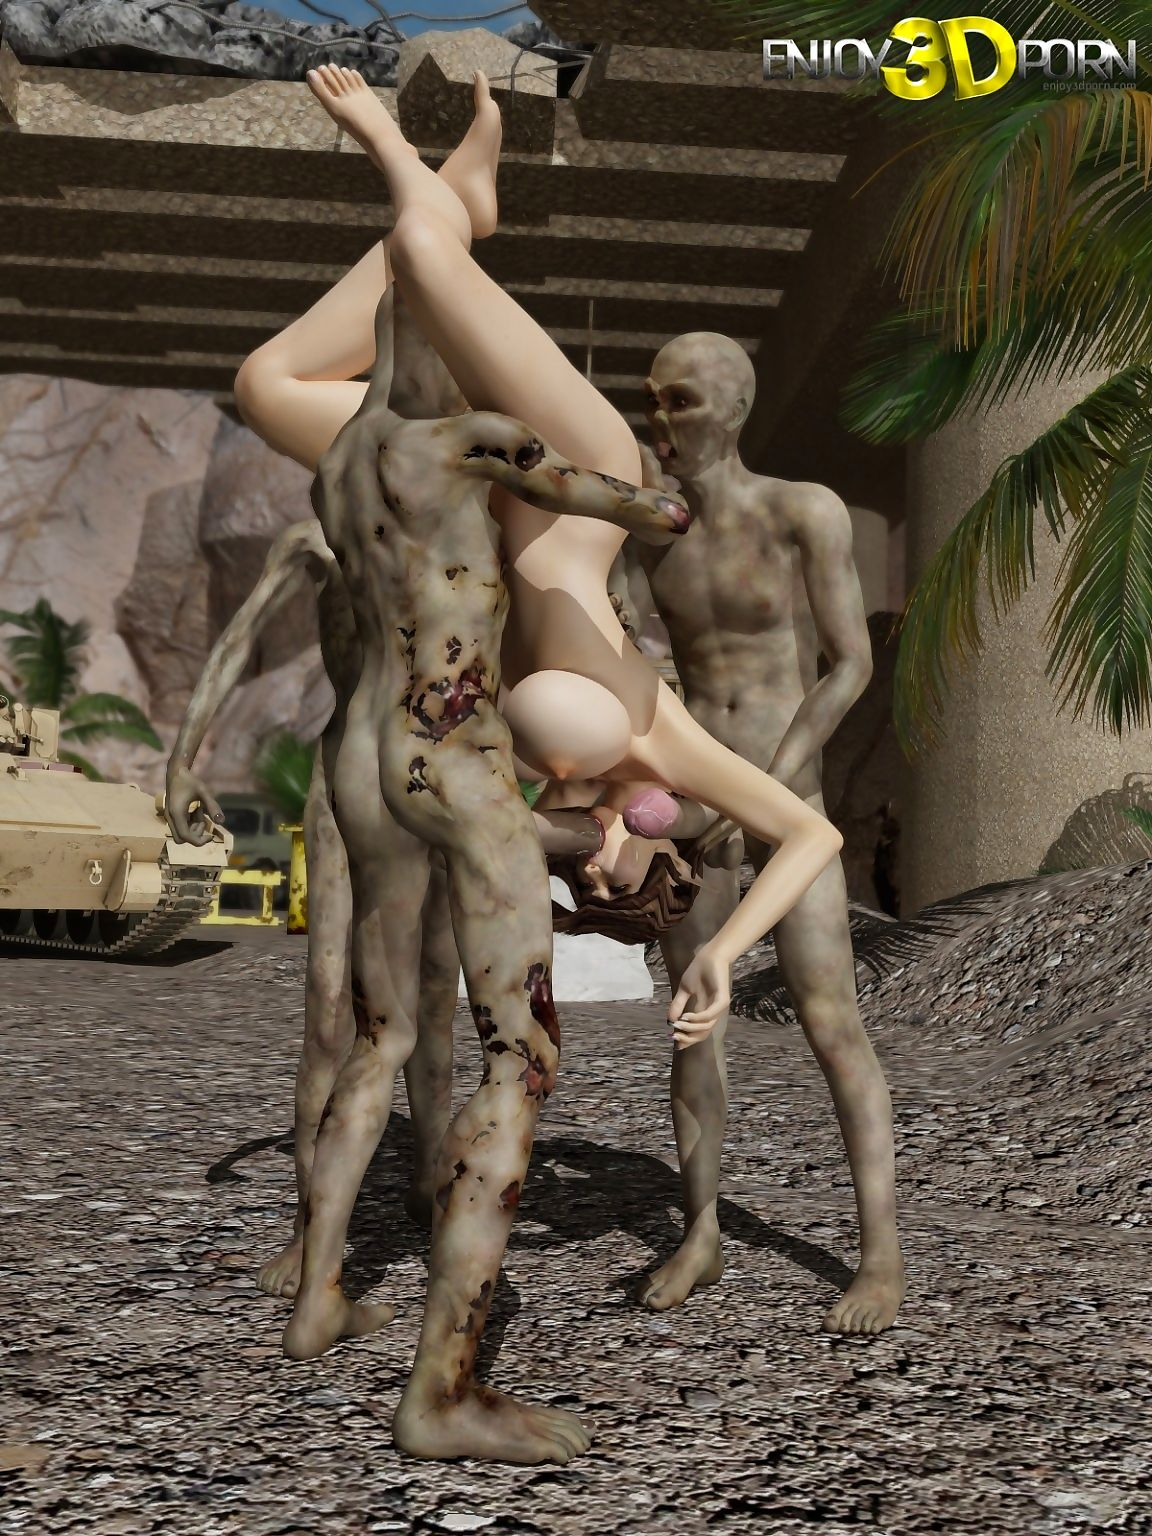 Slutty obscurity baby gets Brobdingnagian facial immigrant several aliens - accoutrement 2